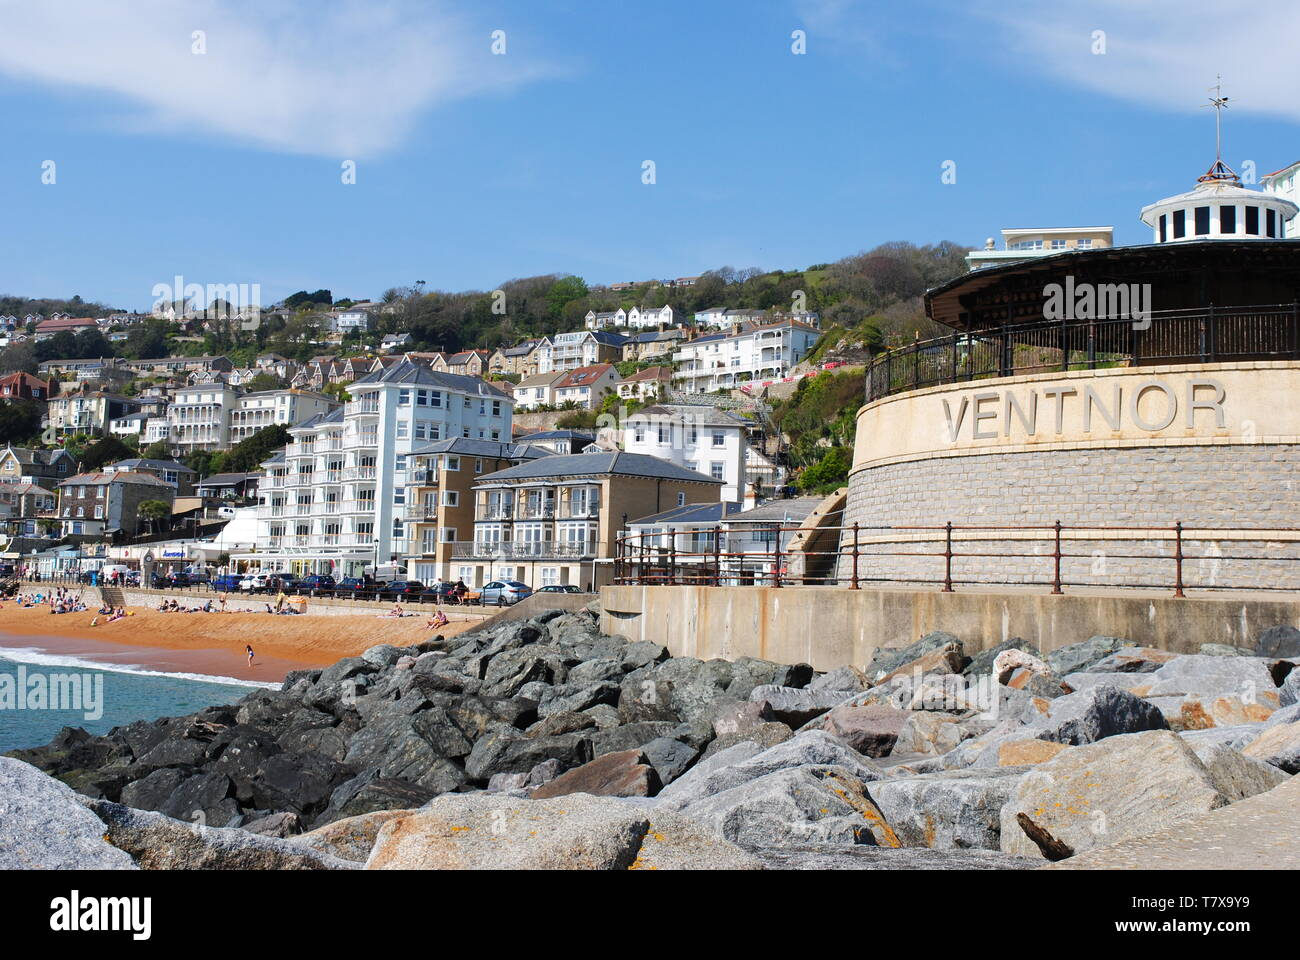 Ventnor Seafront, Isle of Wight, UK - Stock Image